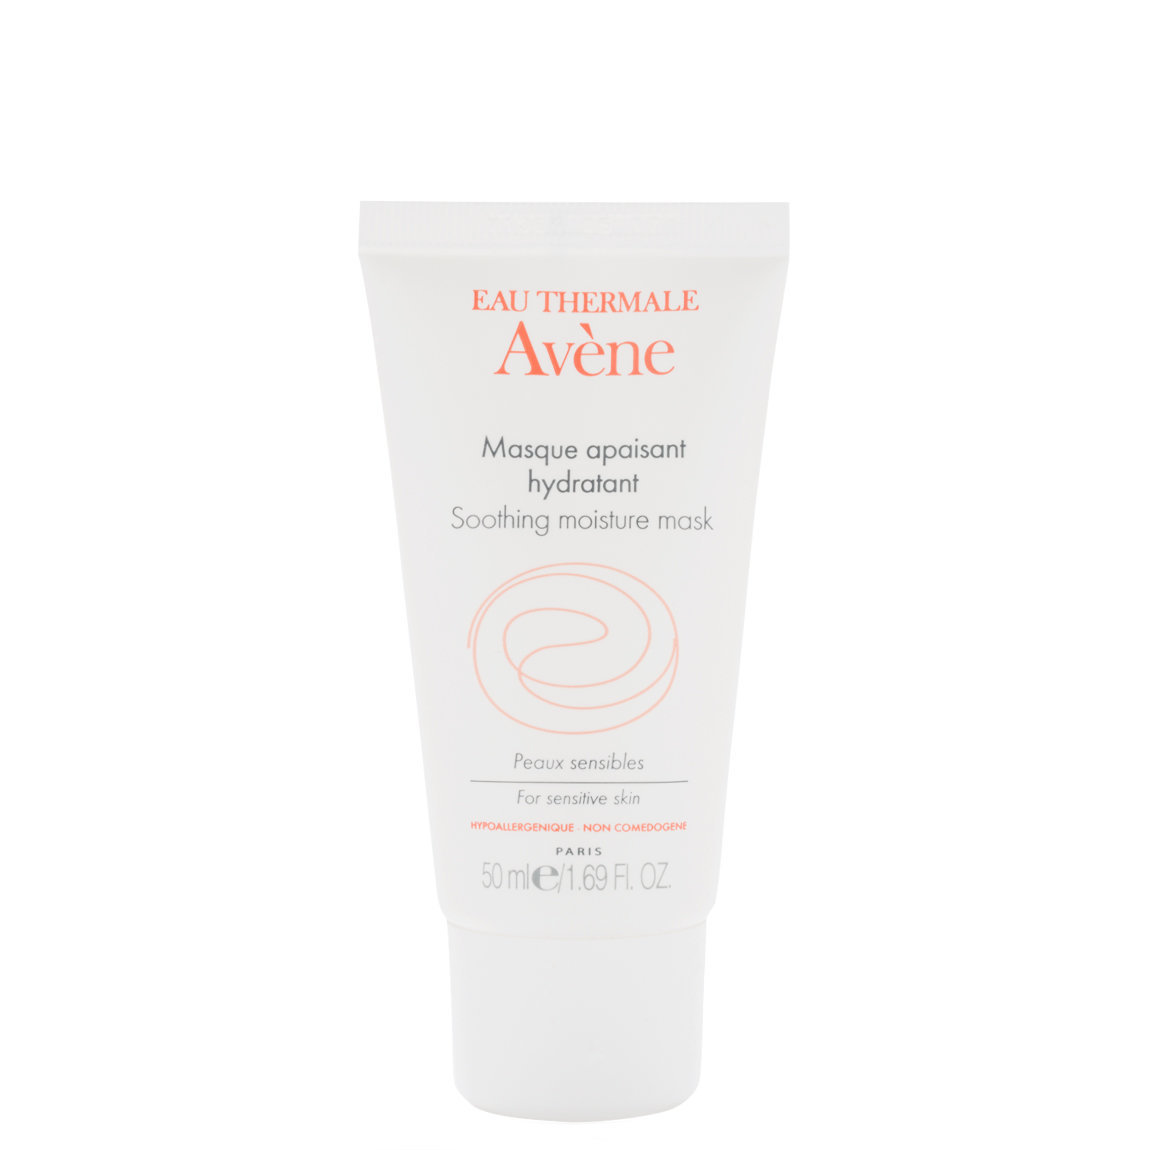 Eau Thermale Avène Soothing Moisture Mask product swatch.